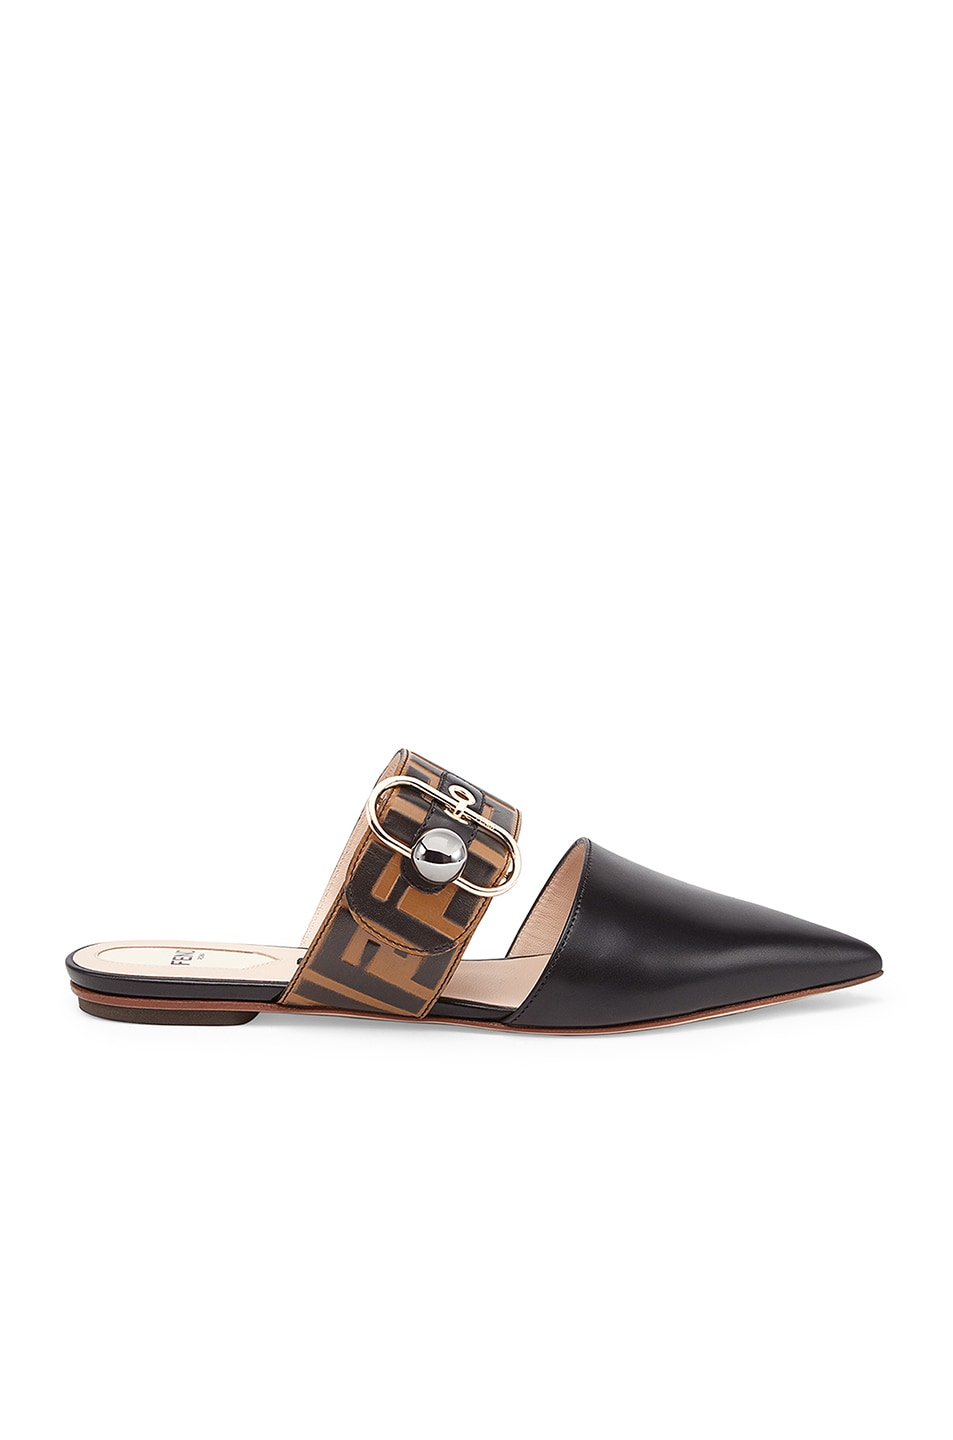 1f2950105205 Image 1 of Fendi Logo Print Leather Slides in Black   Brown